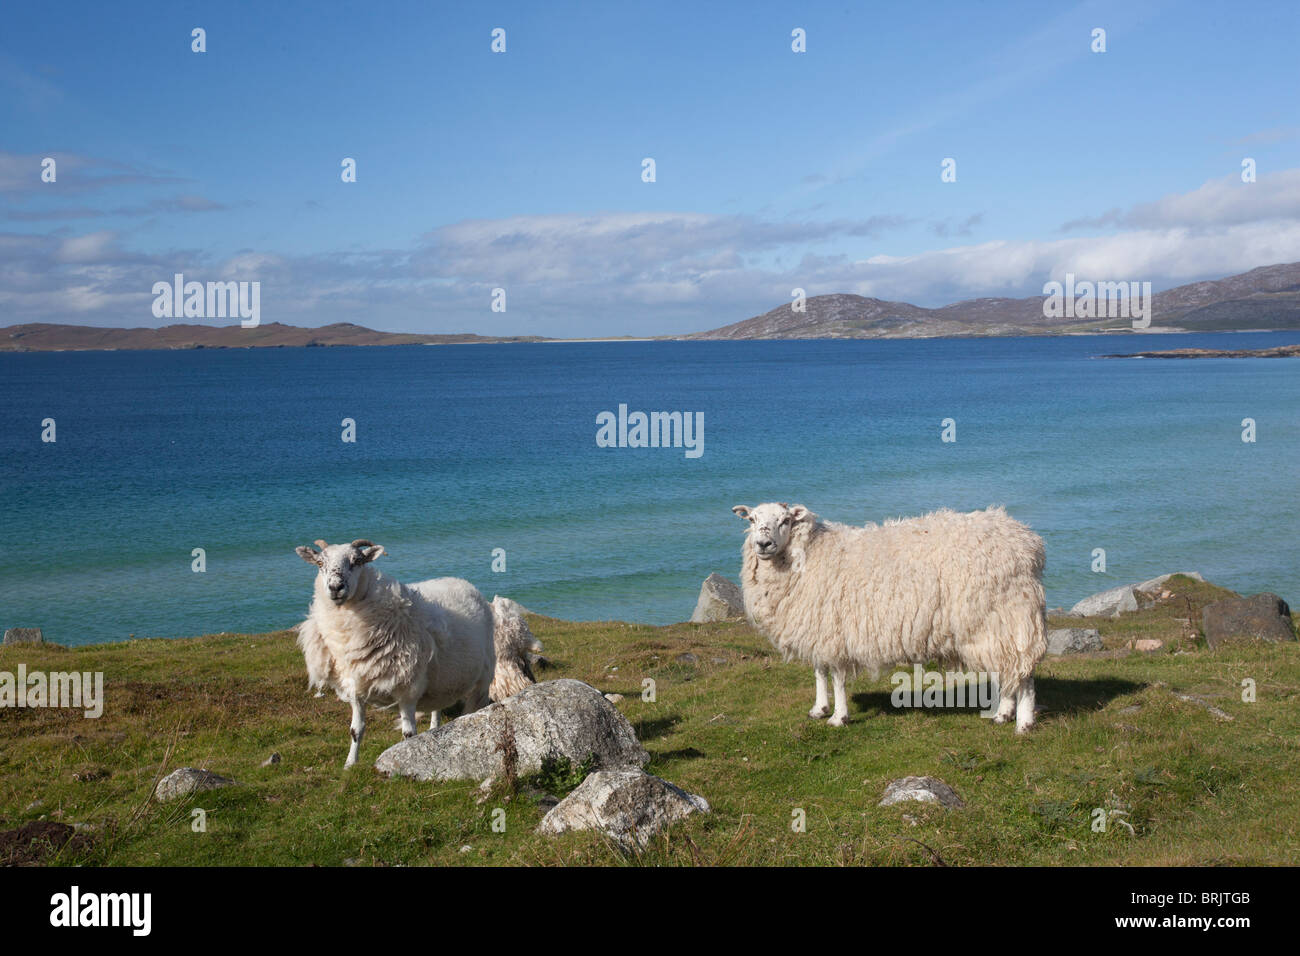 Sheep on the beach of Harris, Outer Hebrides, Scotland - Stock Image